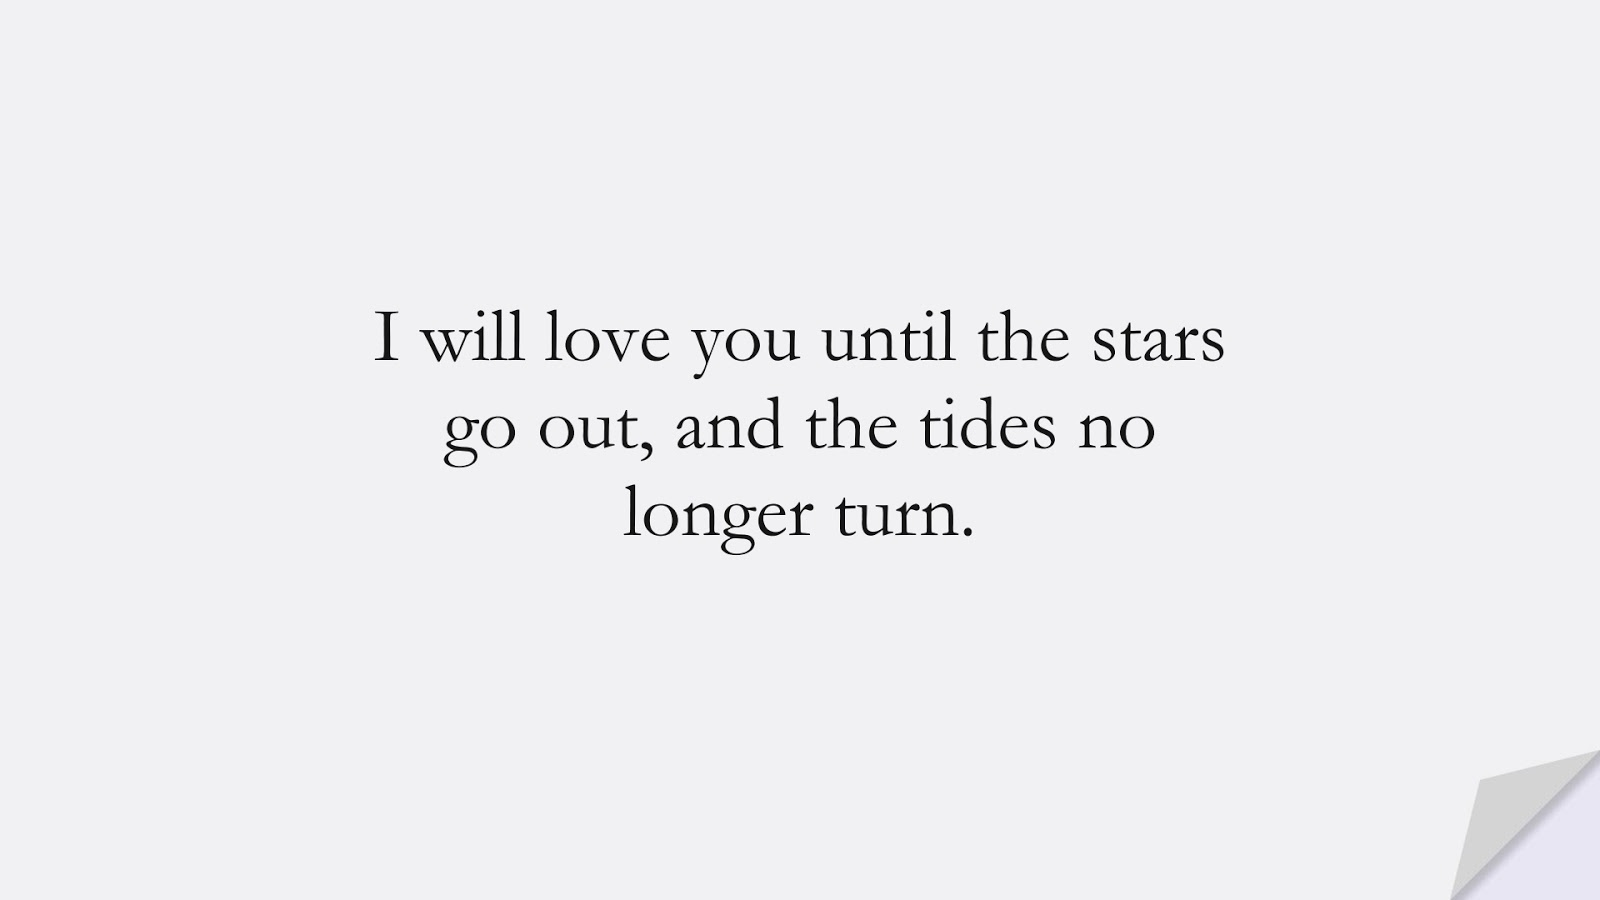 I will love you until the stars go out, and the tides no longer turn.FALSE